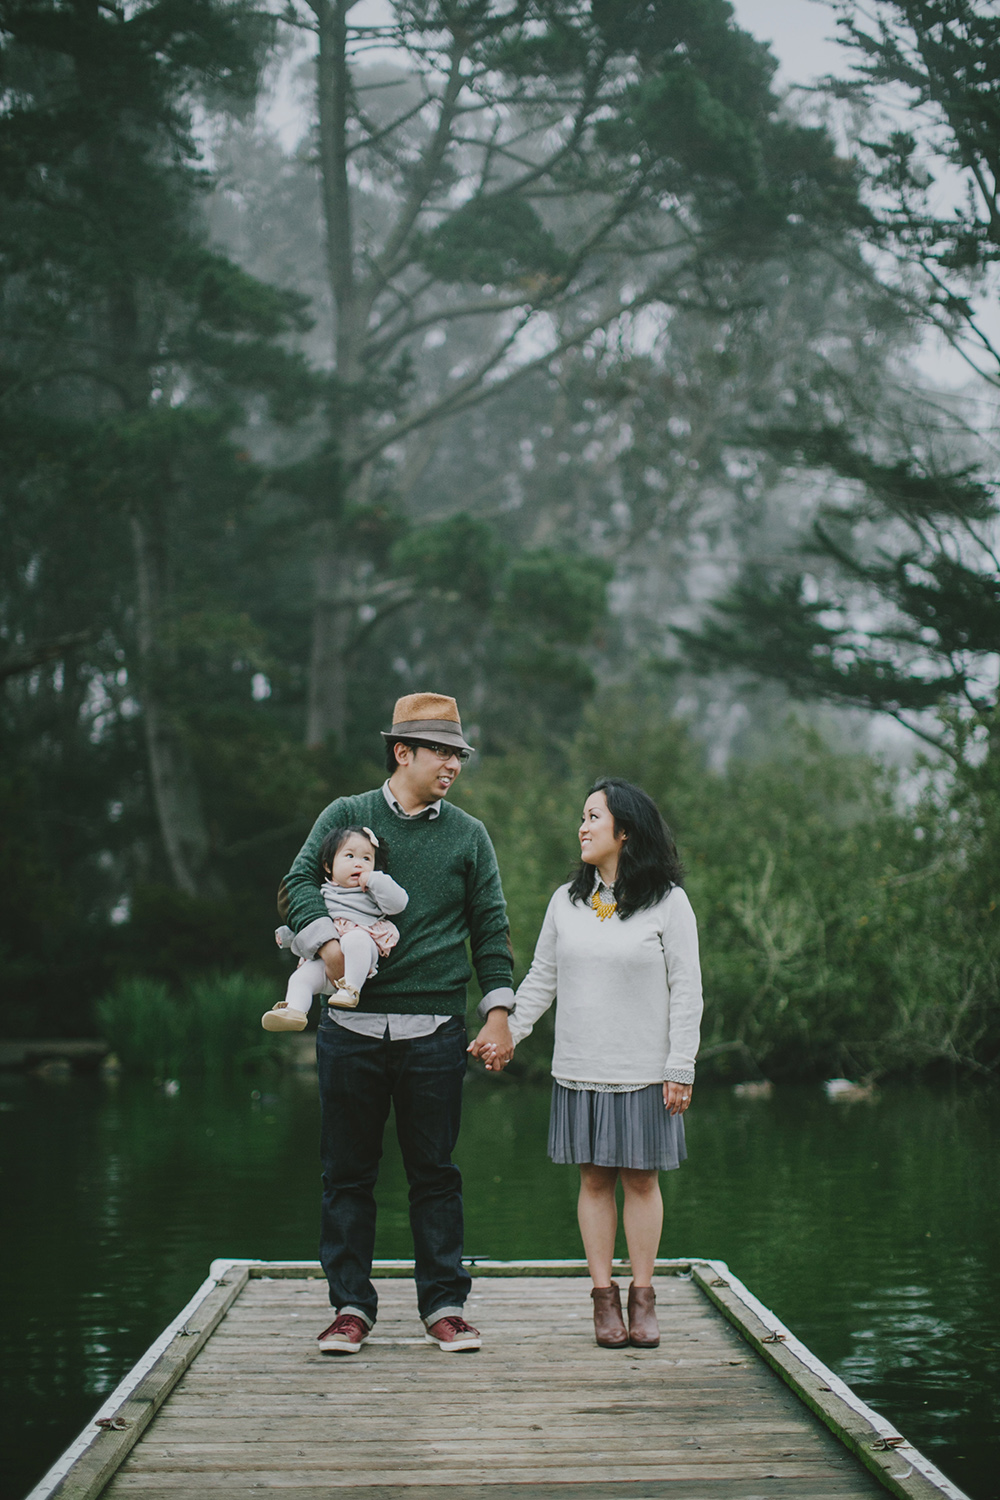 Golden_Gate_Park_San_Francisco_Family_Portrait_Photography-11.JPG